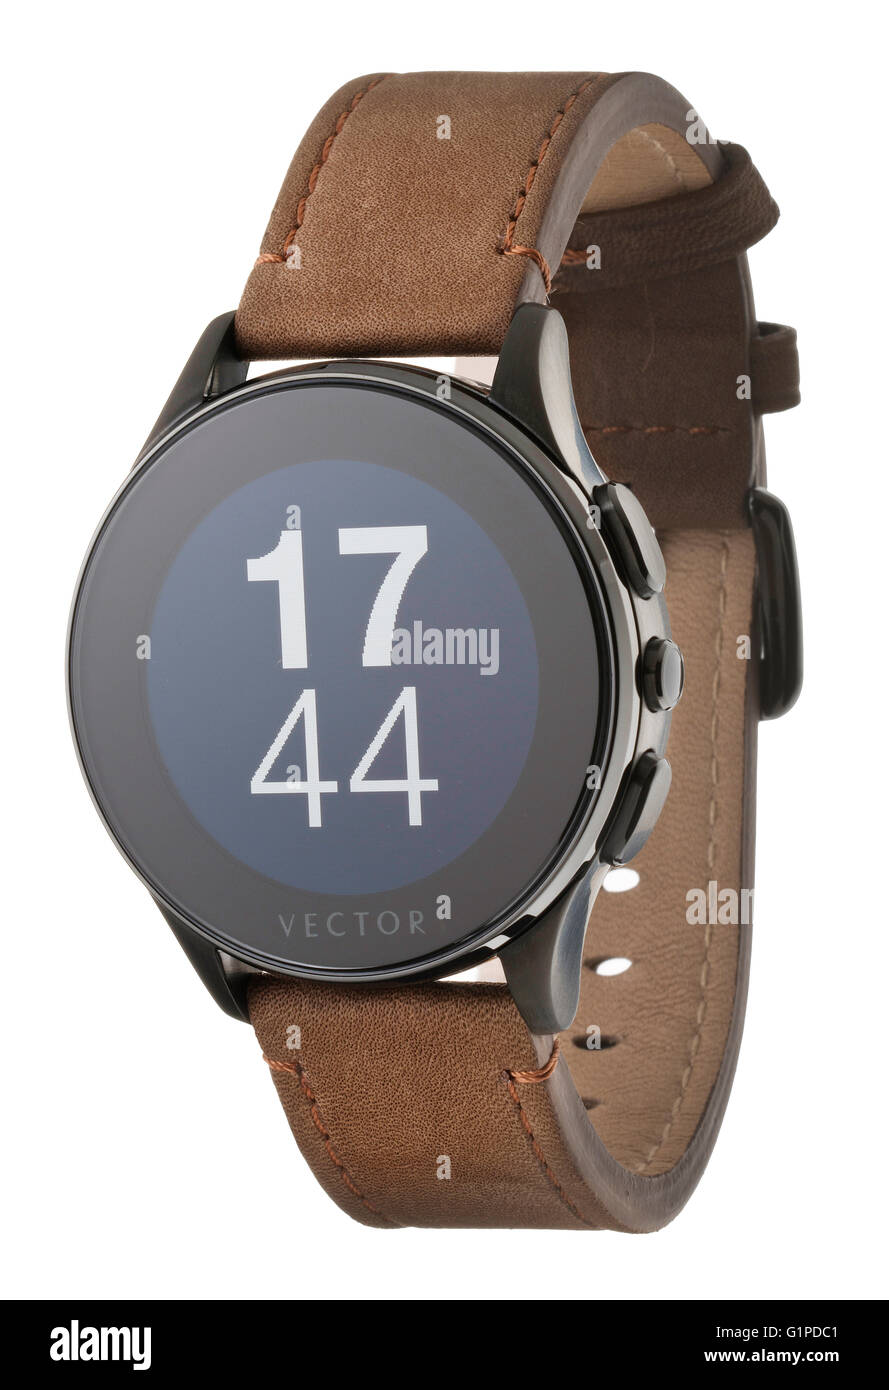 Vector Luna Smart Watch Immagini Stock